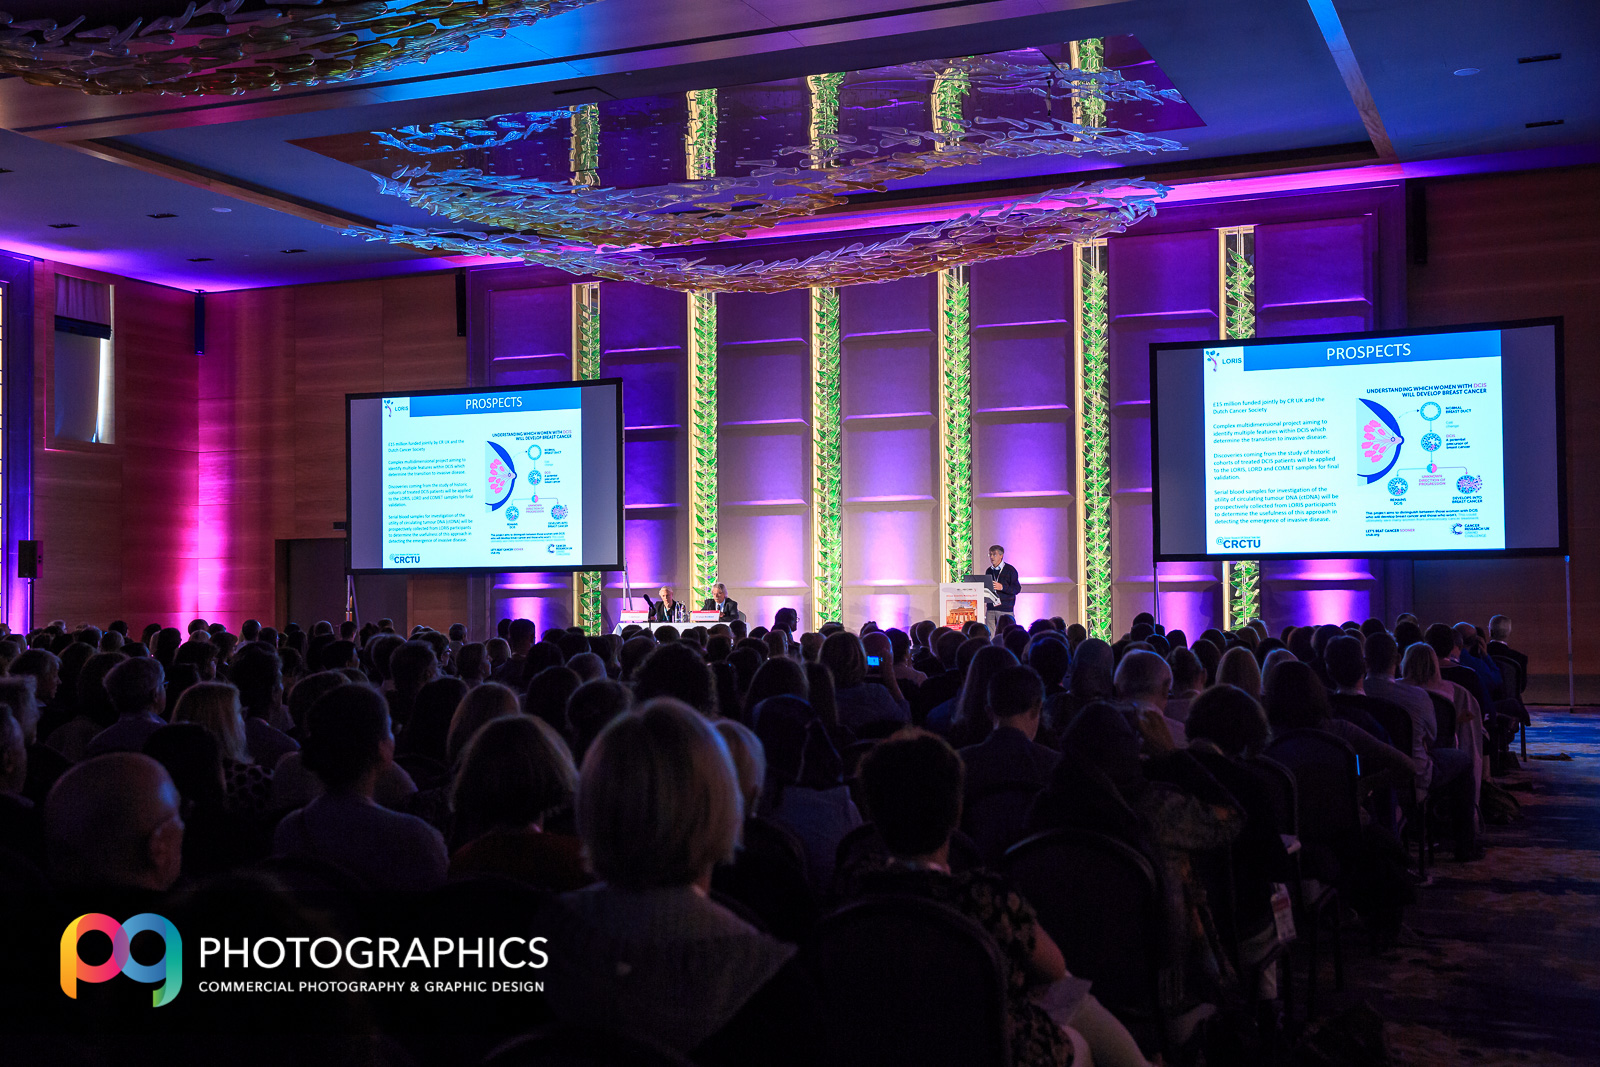 conference-event-photography-edinburgh-glasgow-berlin-11.jpg